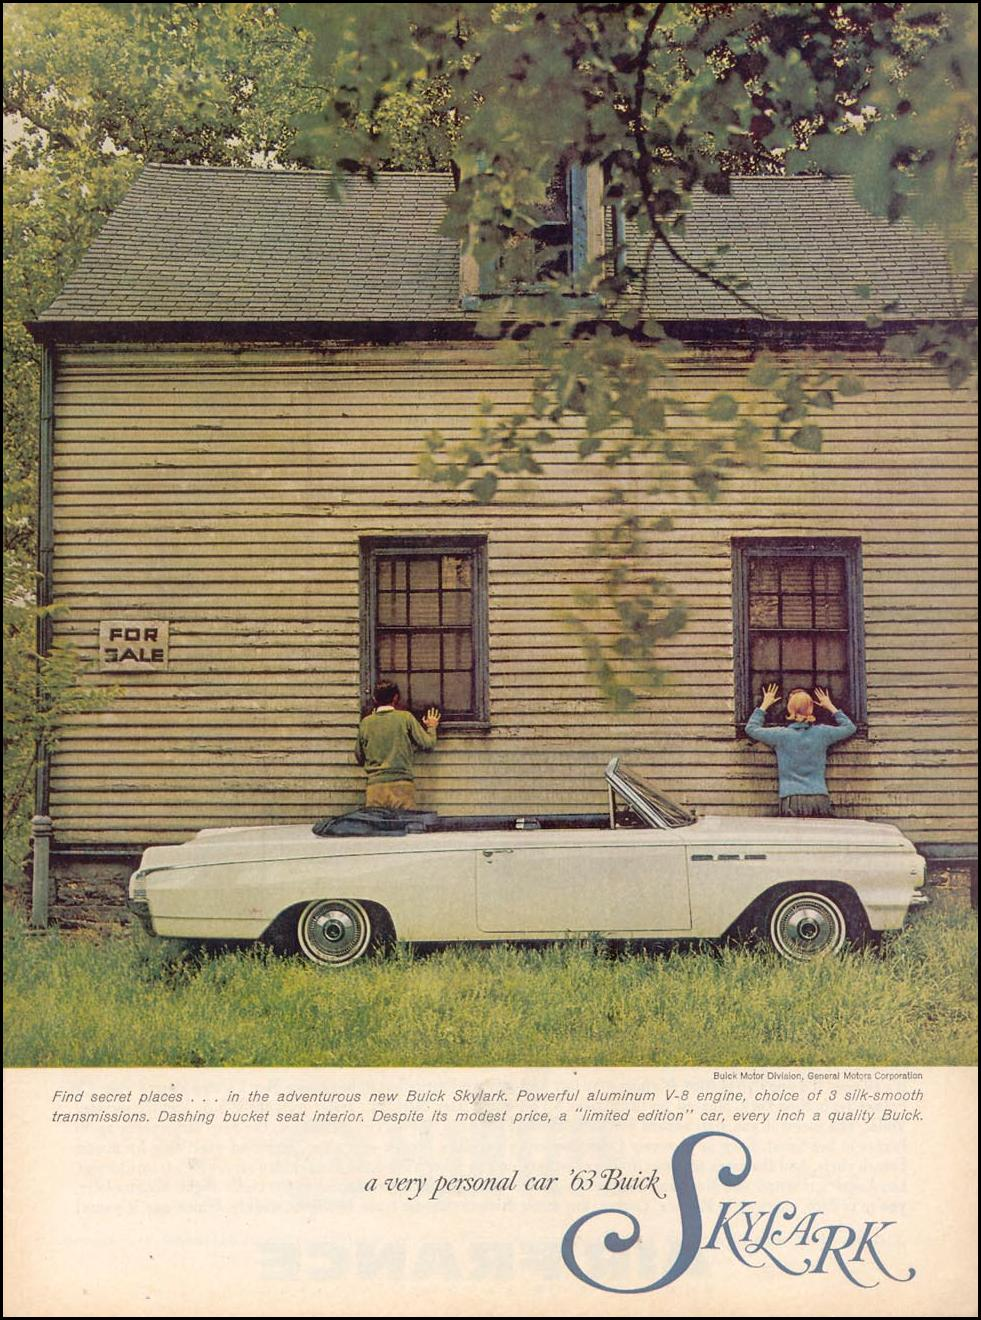 BUICK AUTOMOBILES